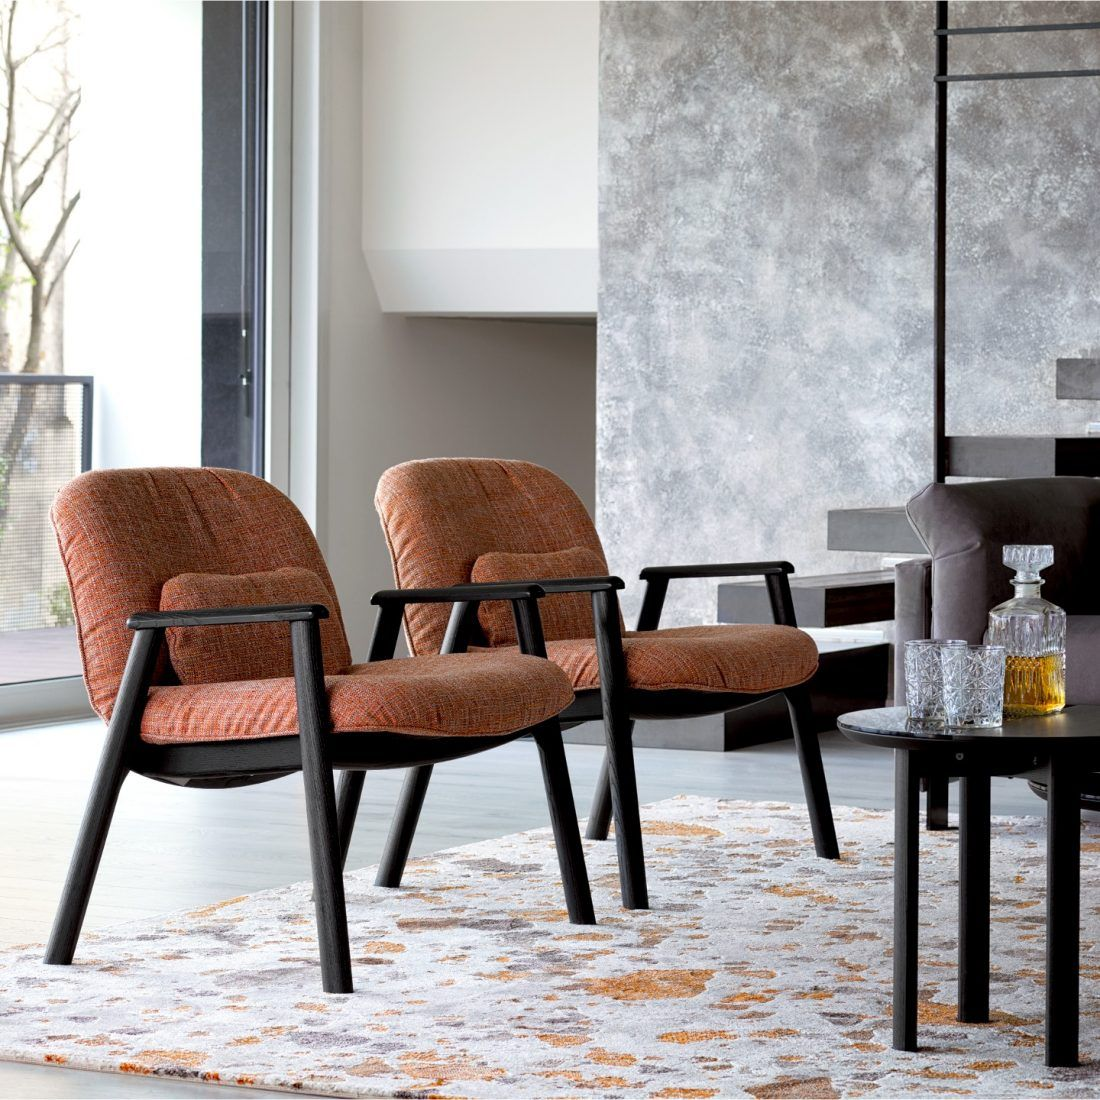 Calligaris Baltimora Armchair And Cementino Rug Th Contemporary Designers Furniture Da Vinci Lifestyle Contemporary Furniture Design Furniture Design Furniture